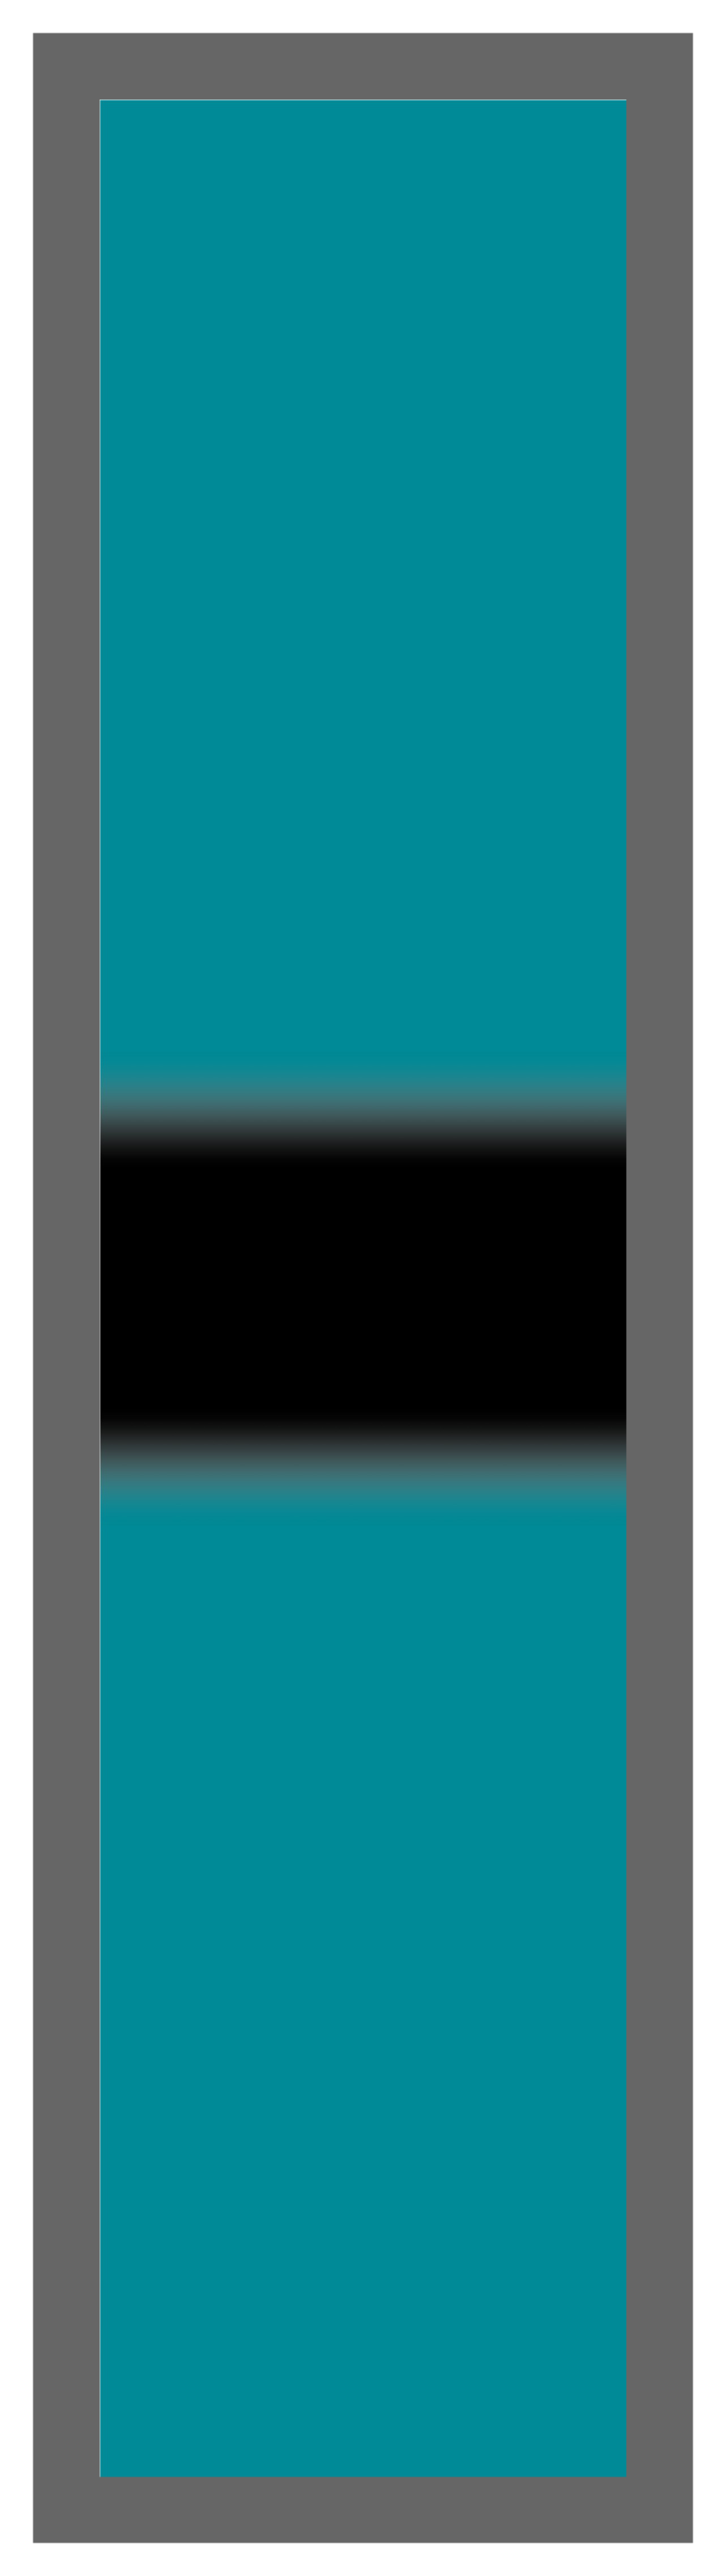 Teal-Black Center Tailless